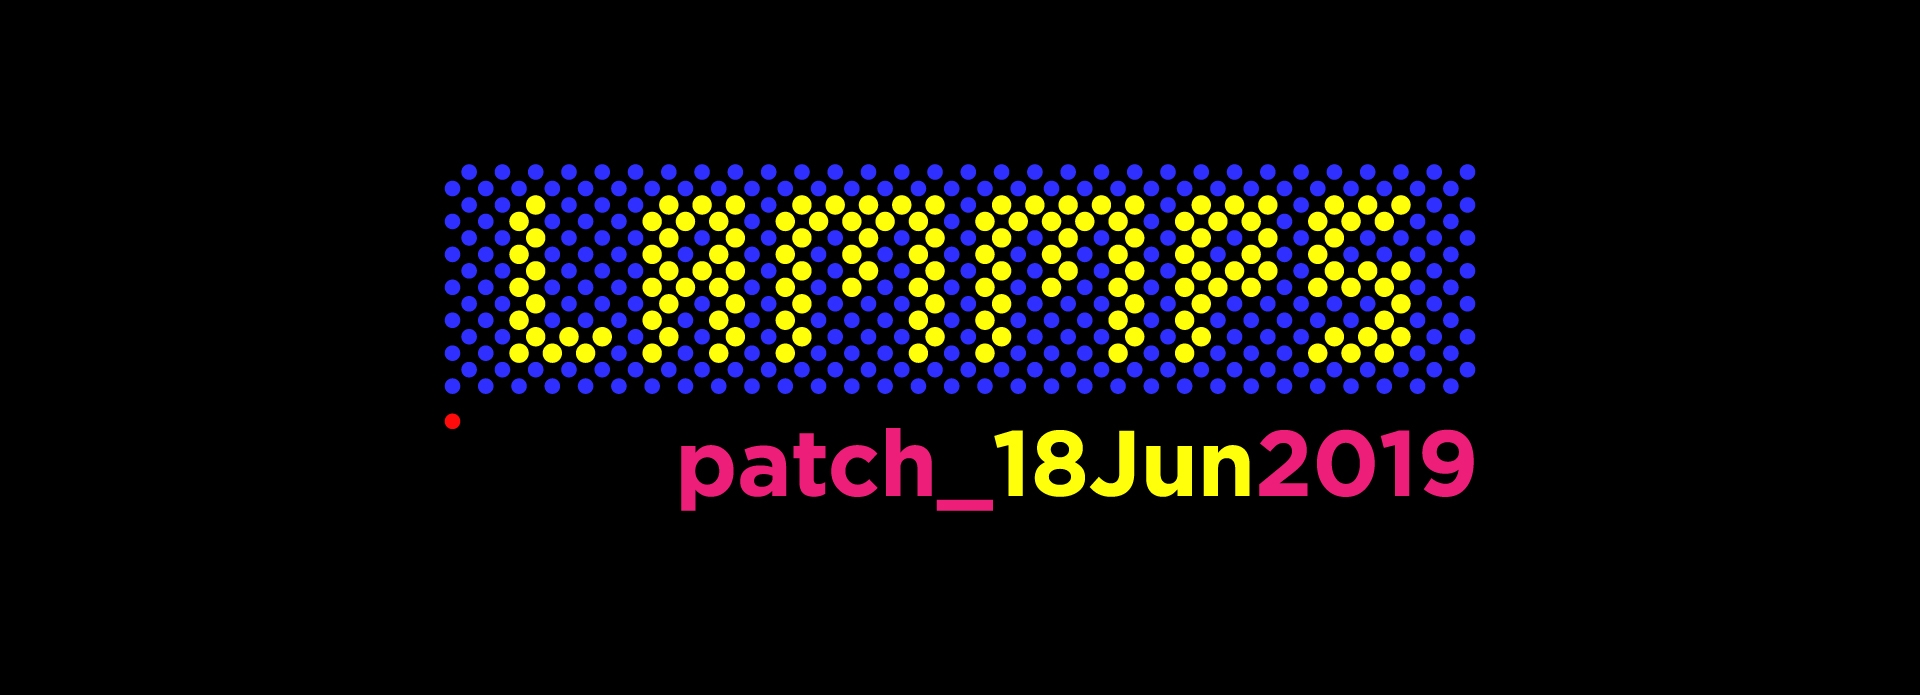 LAMMPS-patch-18Jun_2019.jpg